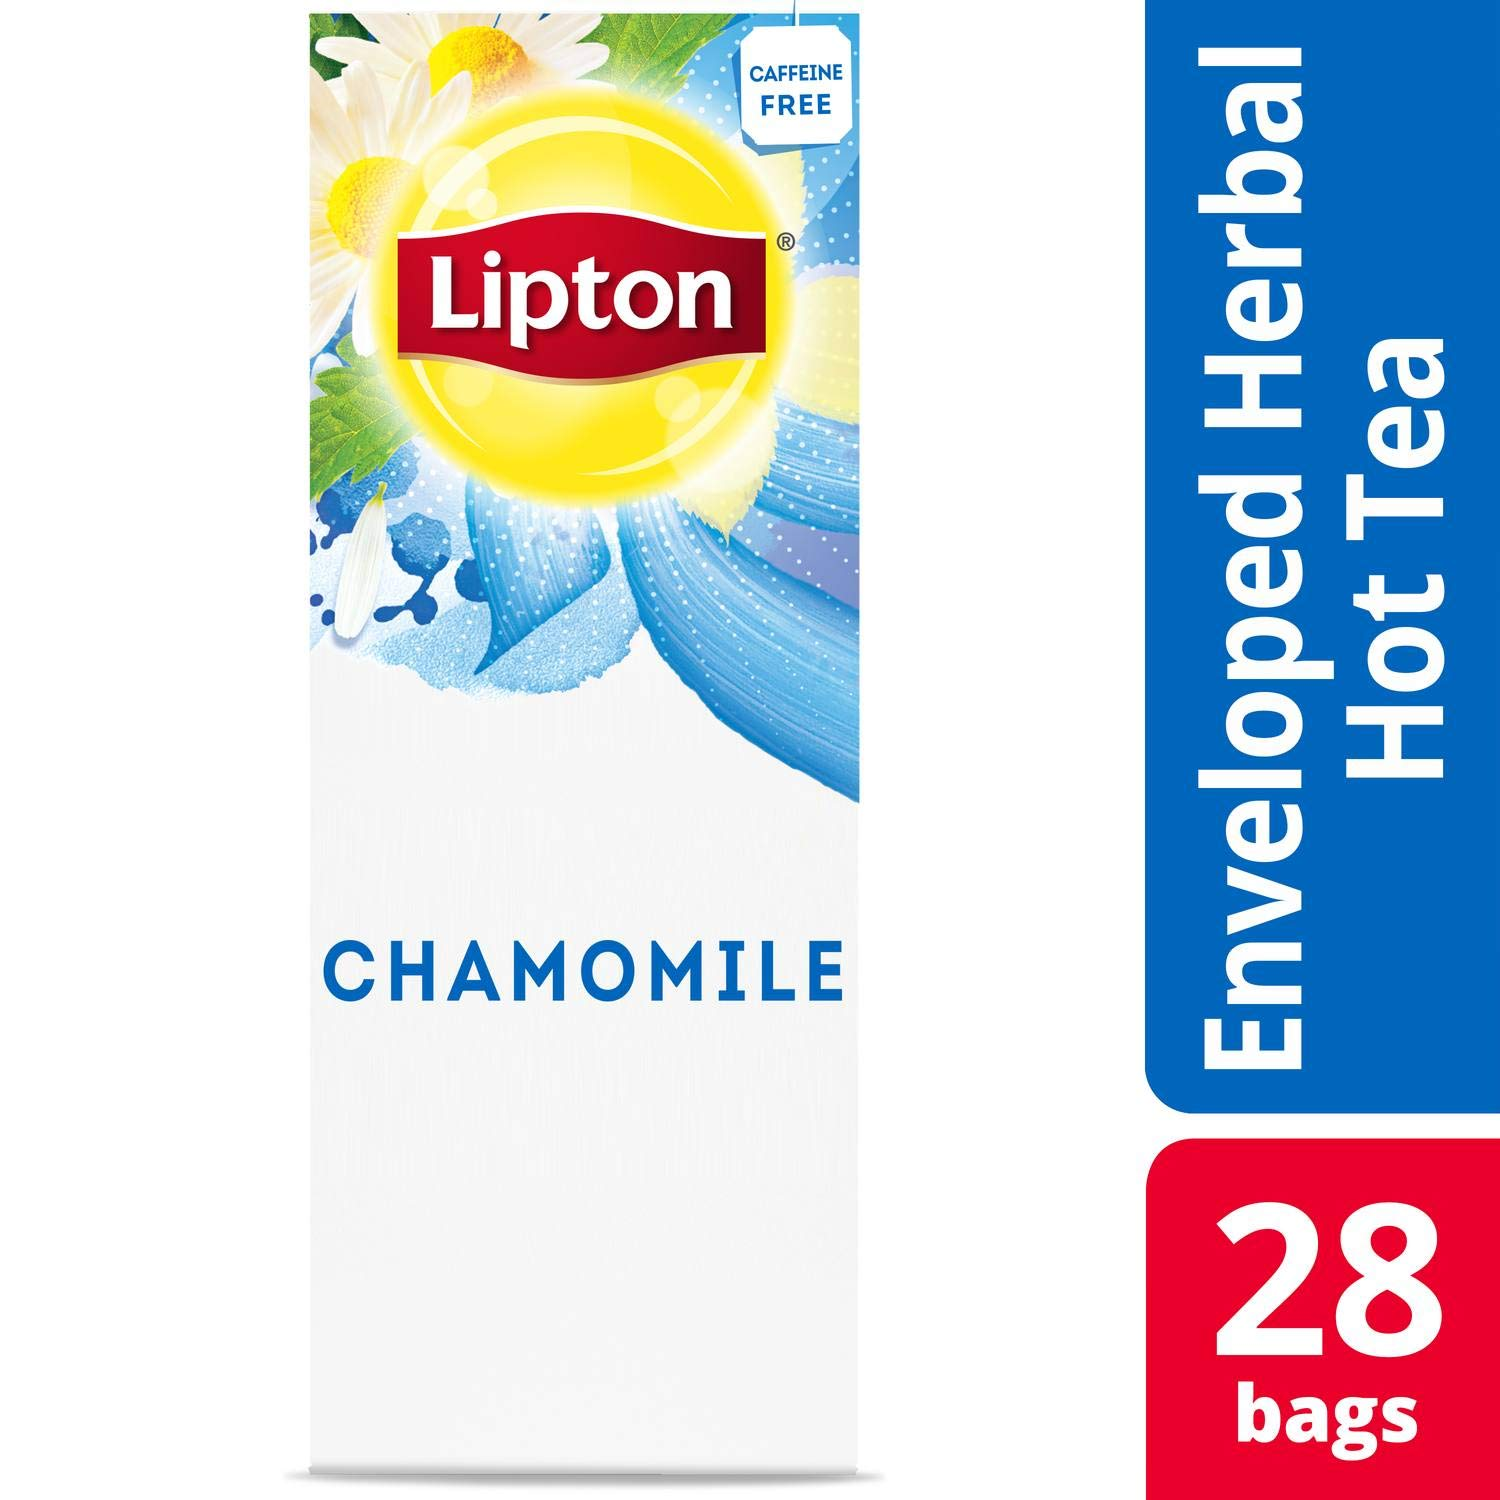 Lipton Hot Tea Bags Chamomile 28 count, Pack of 6